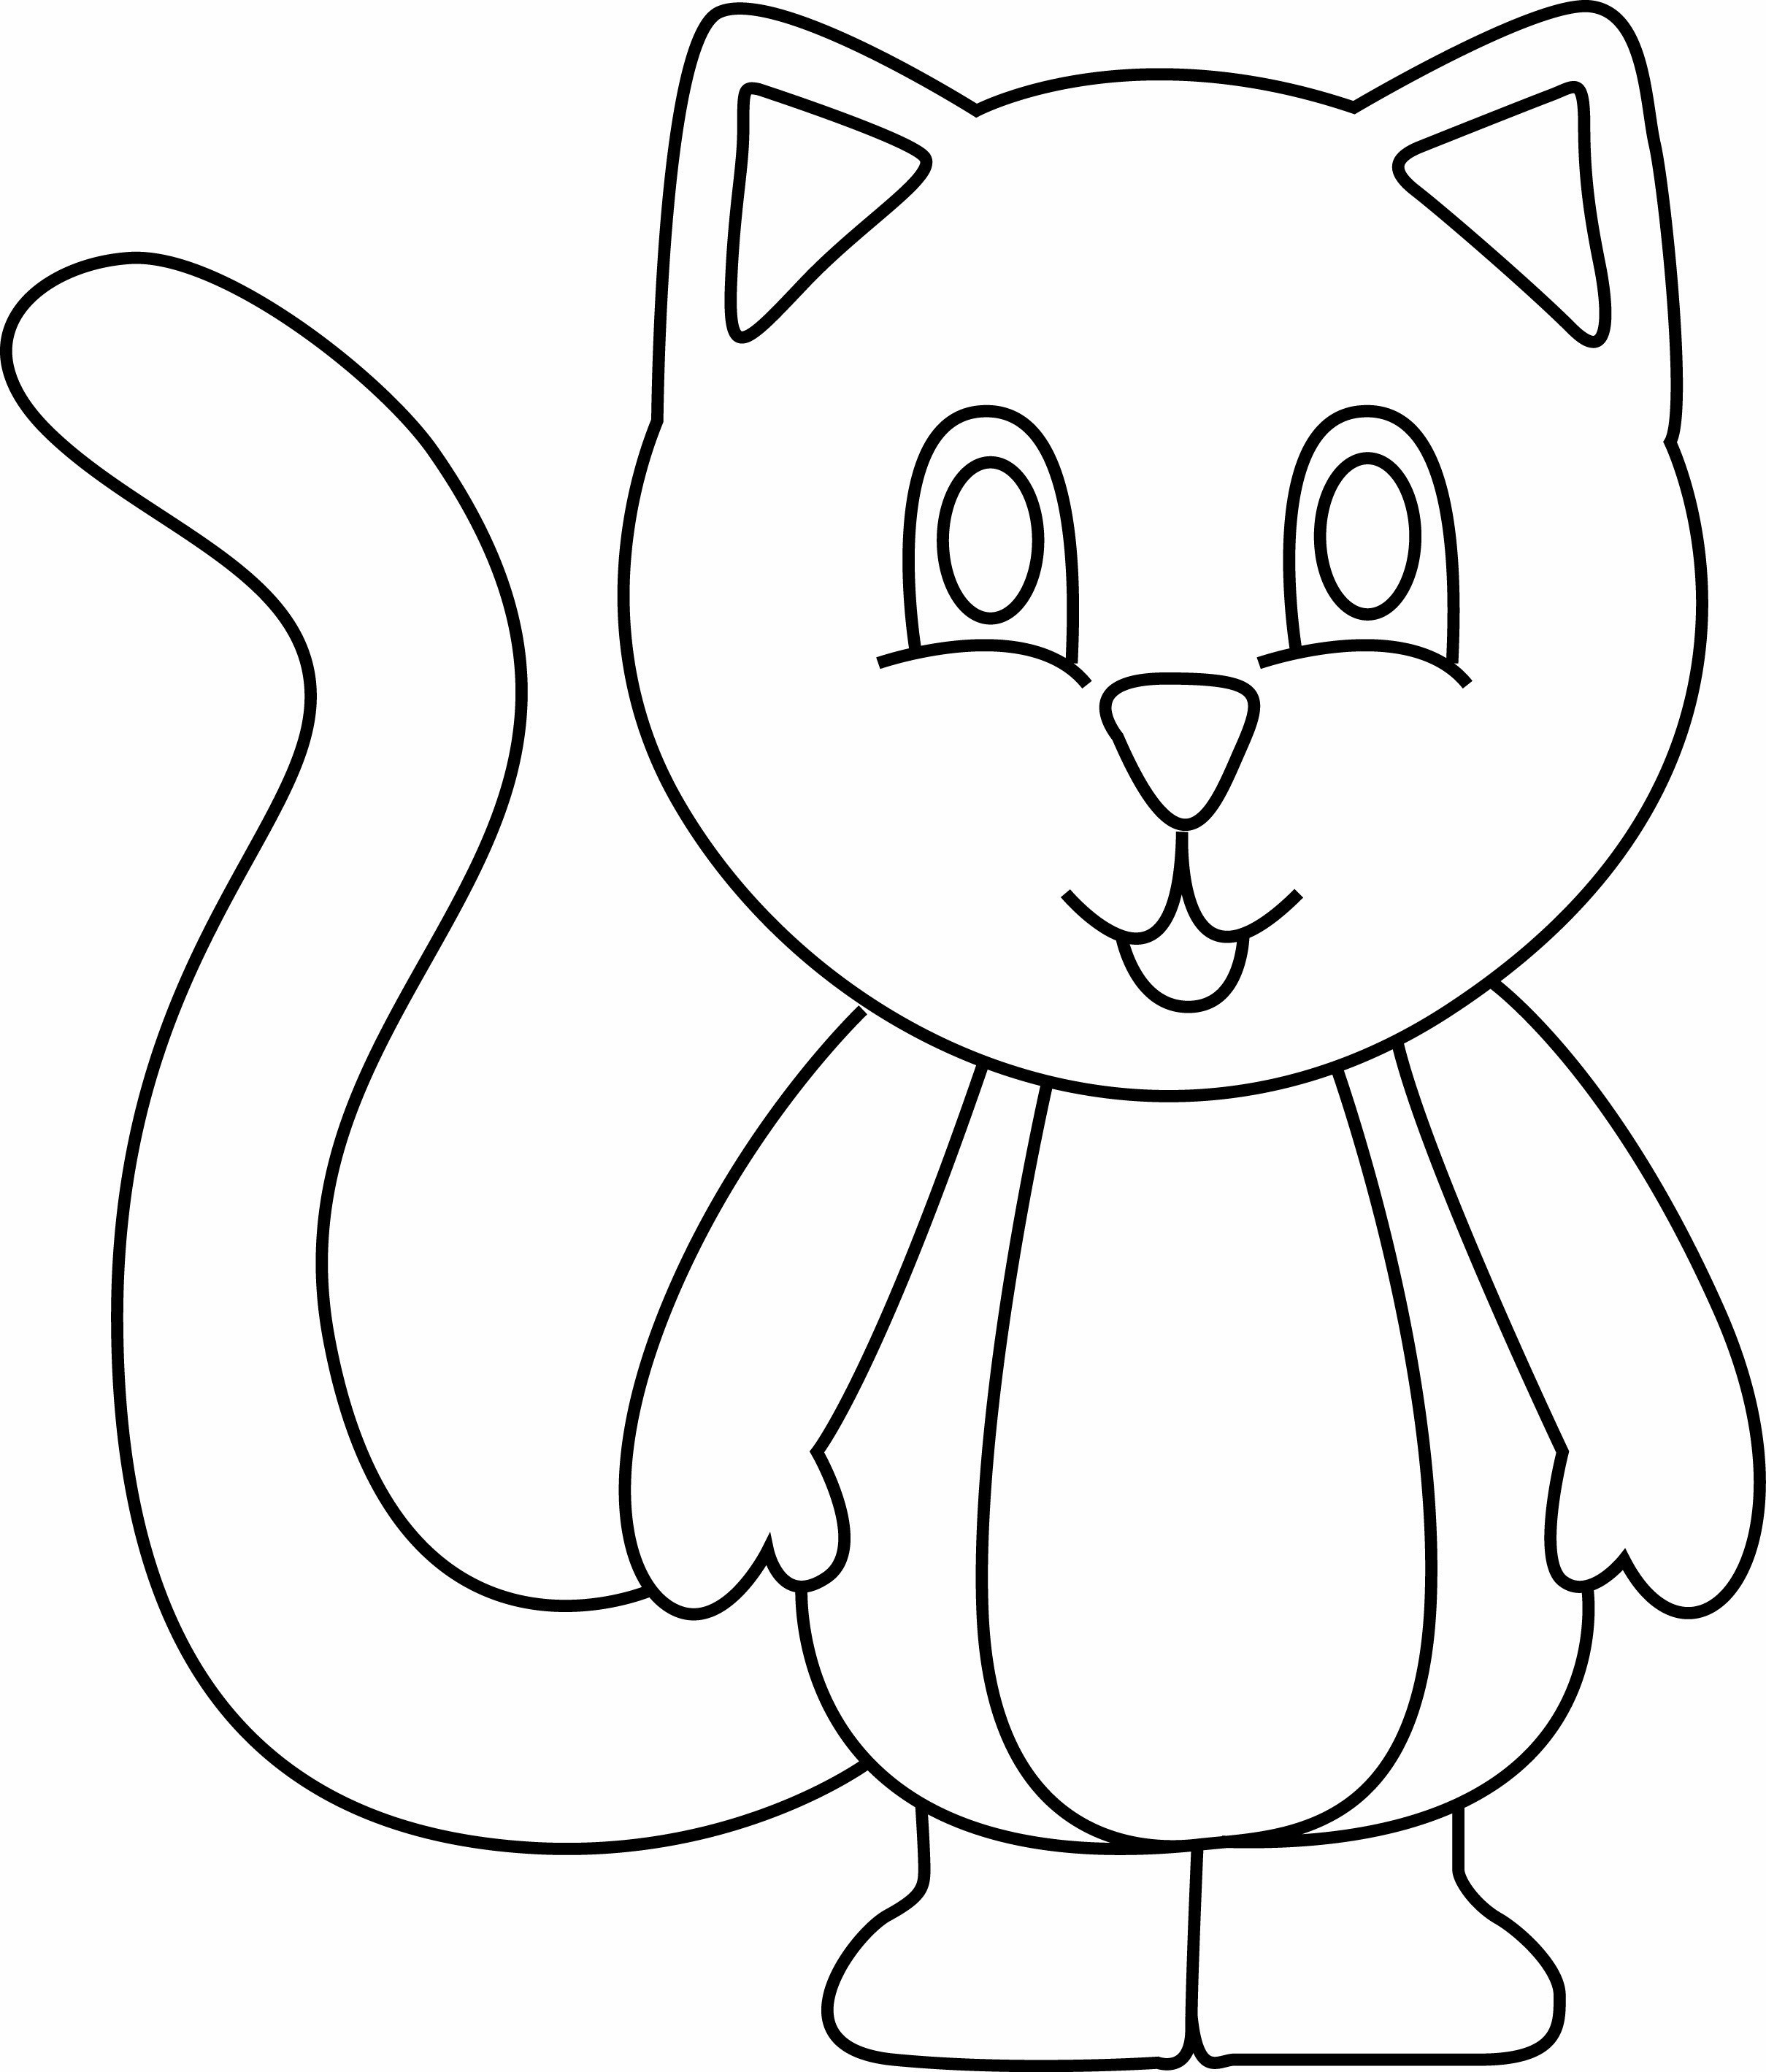 Coloriage Animaux Chat 05 10 Doigts